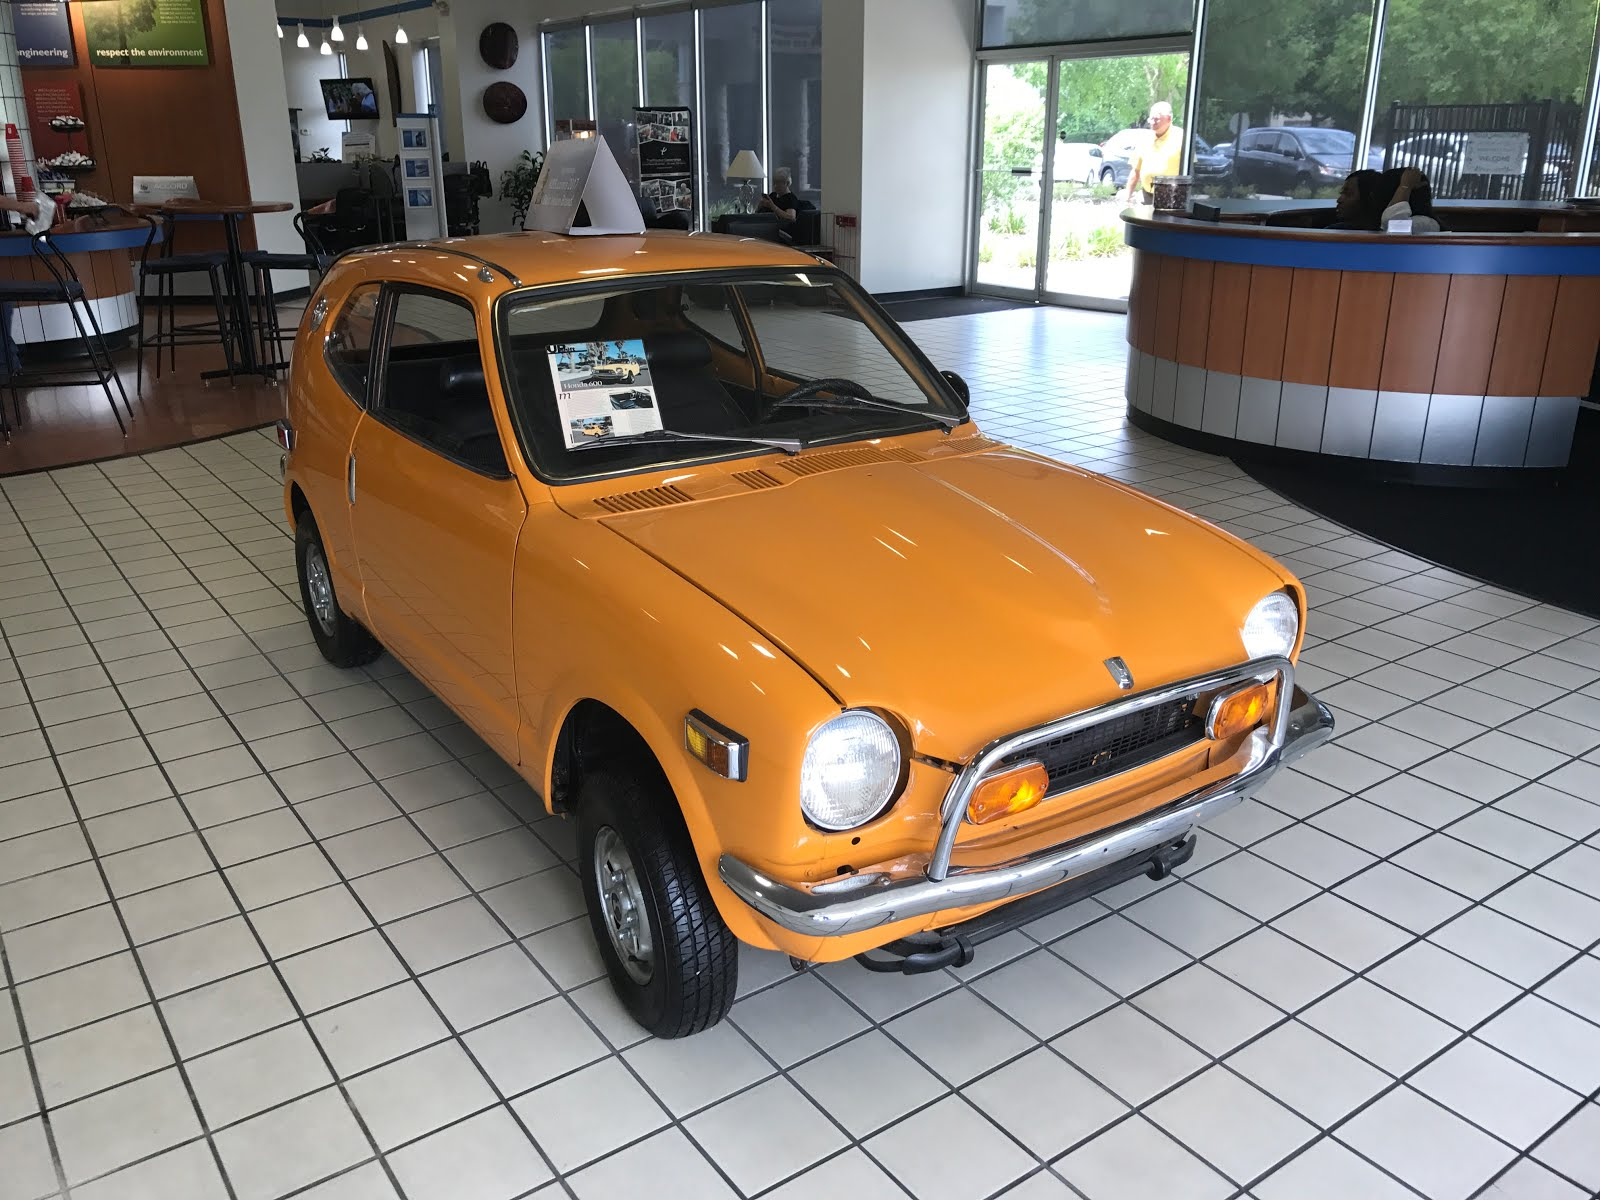 The Honda 600   The First Honda Car Produced For USA Import   We Had One